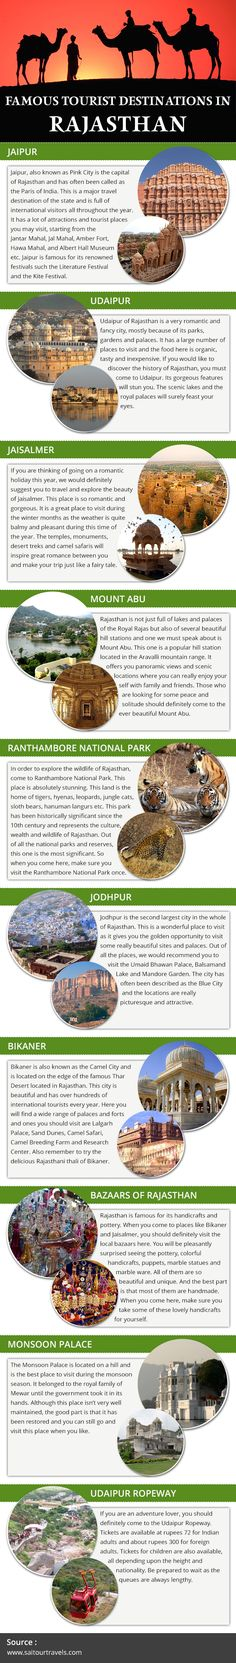 Check out the Latest ‪#‎Infographic‬ of Sai Tour & Travels. Visit: http://visual.ly/famous-tourist-destinations-rajasthan ‪   #Travel #Chandigarh #Mohali #Panchkula #Taxiservice #Touroperator